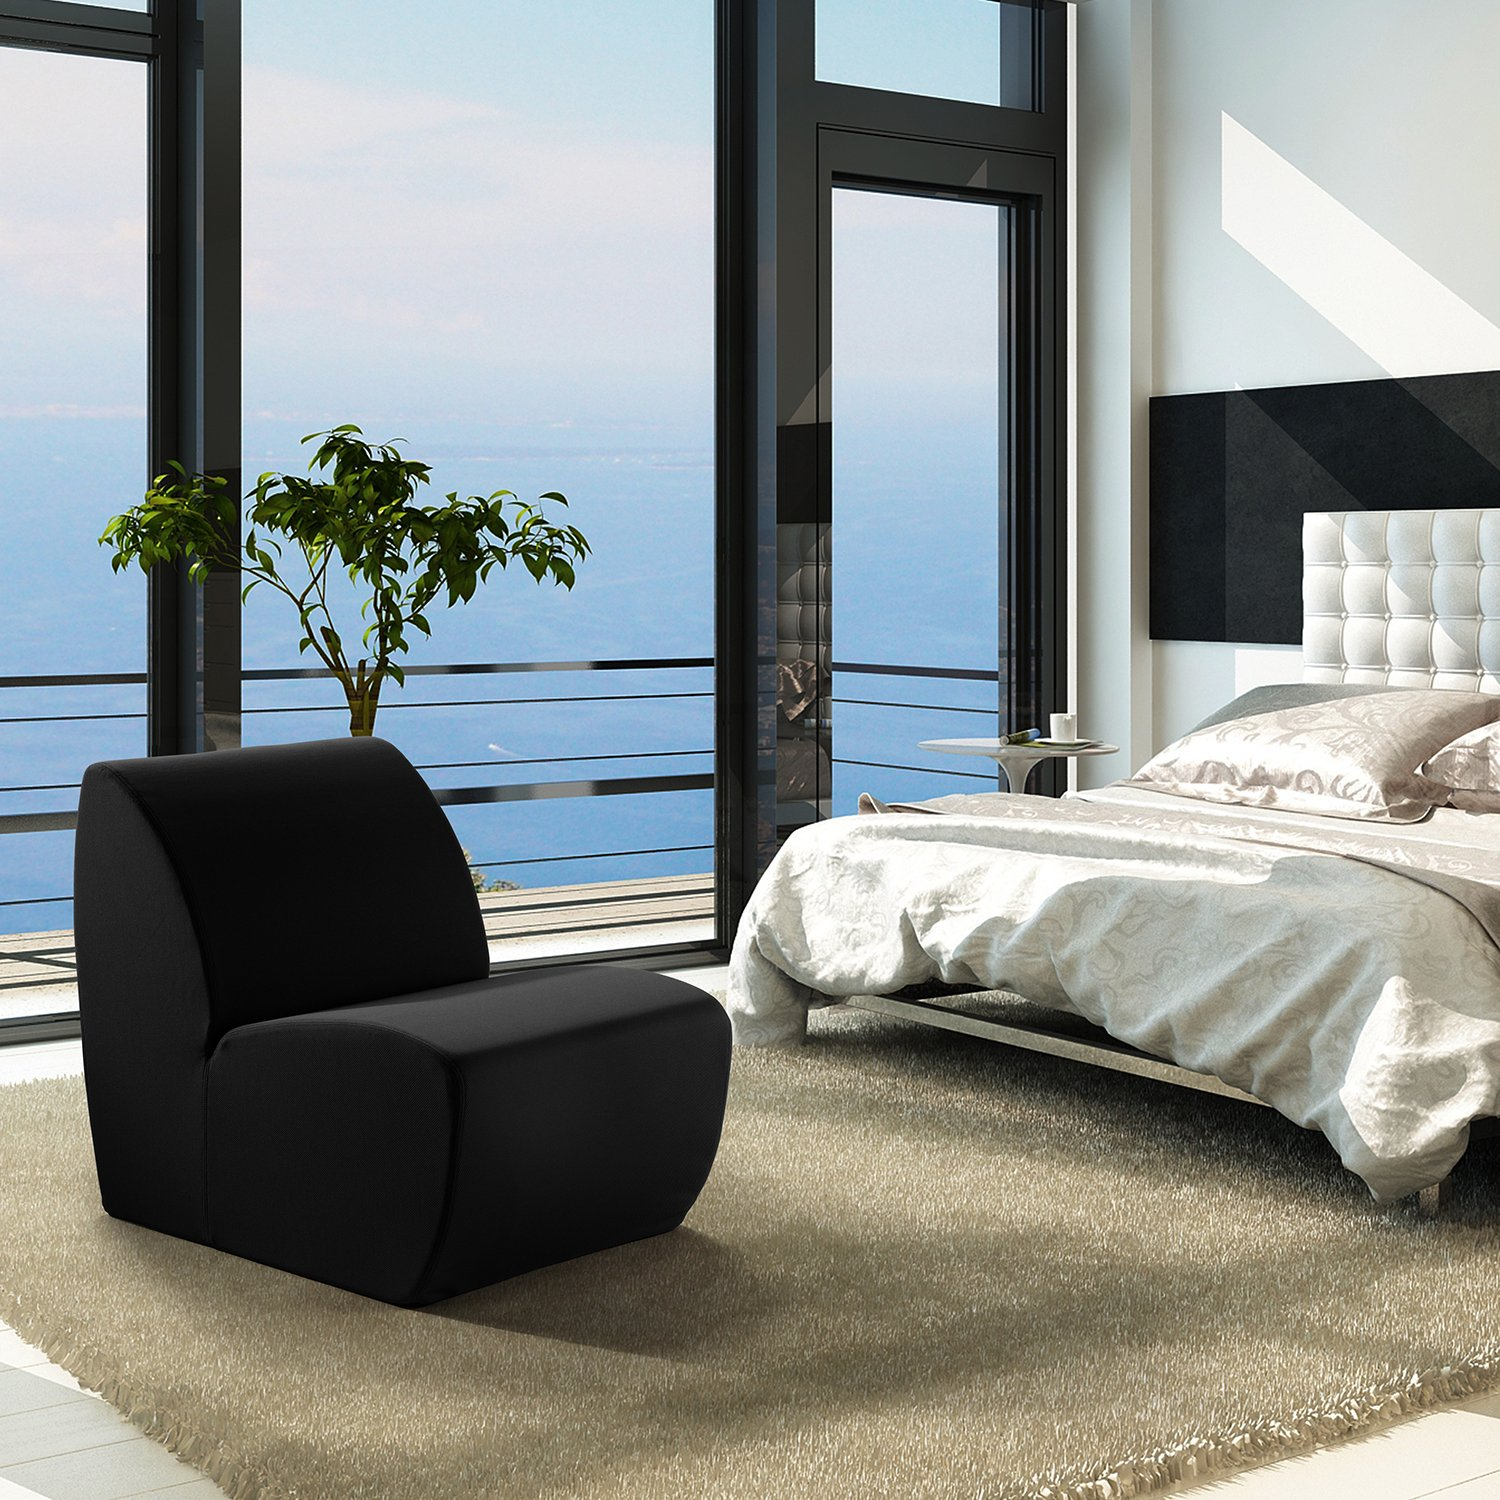 Accent Chair For Bedroom What Are The Best Accent Chairs And Where Can I Get Them Sit